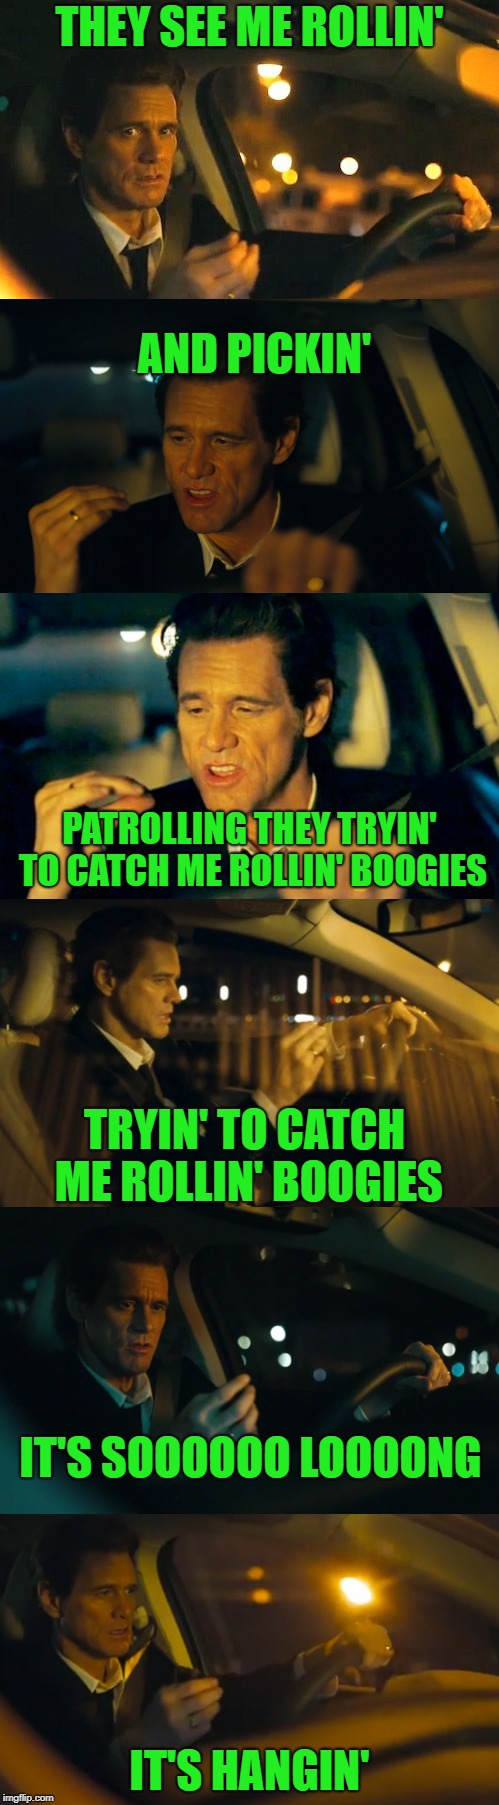 Ridin' Green | THEY SEE ME ROLLIN' IT'S HANGIN' AND PICKIN' PATROLLING THEY TRYIN' TO CATCH ME ROLLIN' BOOGIES TRYIN' TO CATCH ME ROLLIN' BOOGIES IT'S SOOO | image tagged in memes,funny,boogers | made w/ Imgflip meme maker